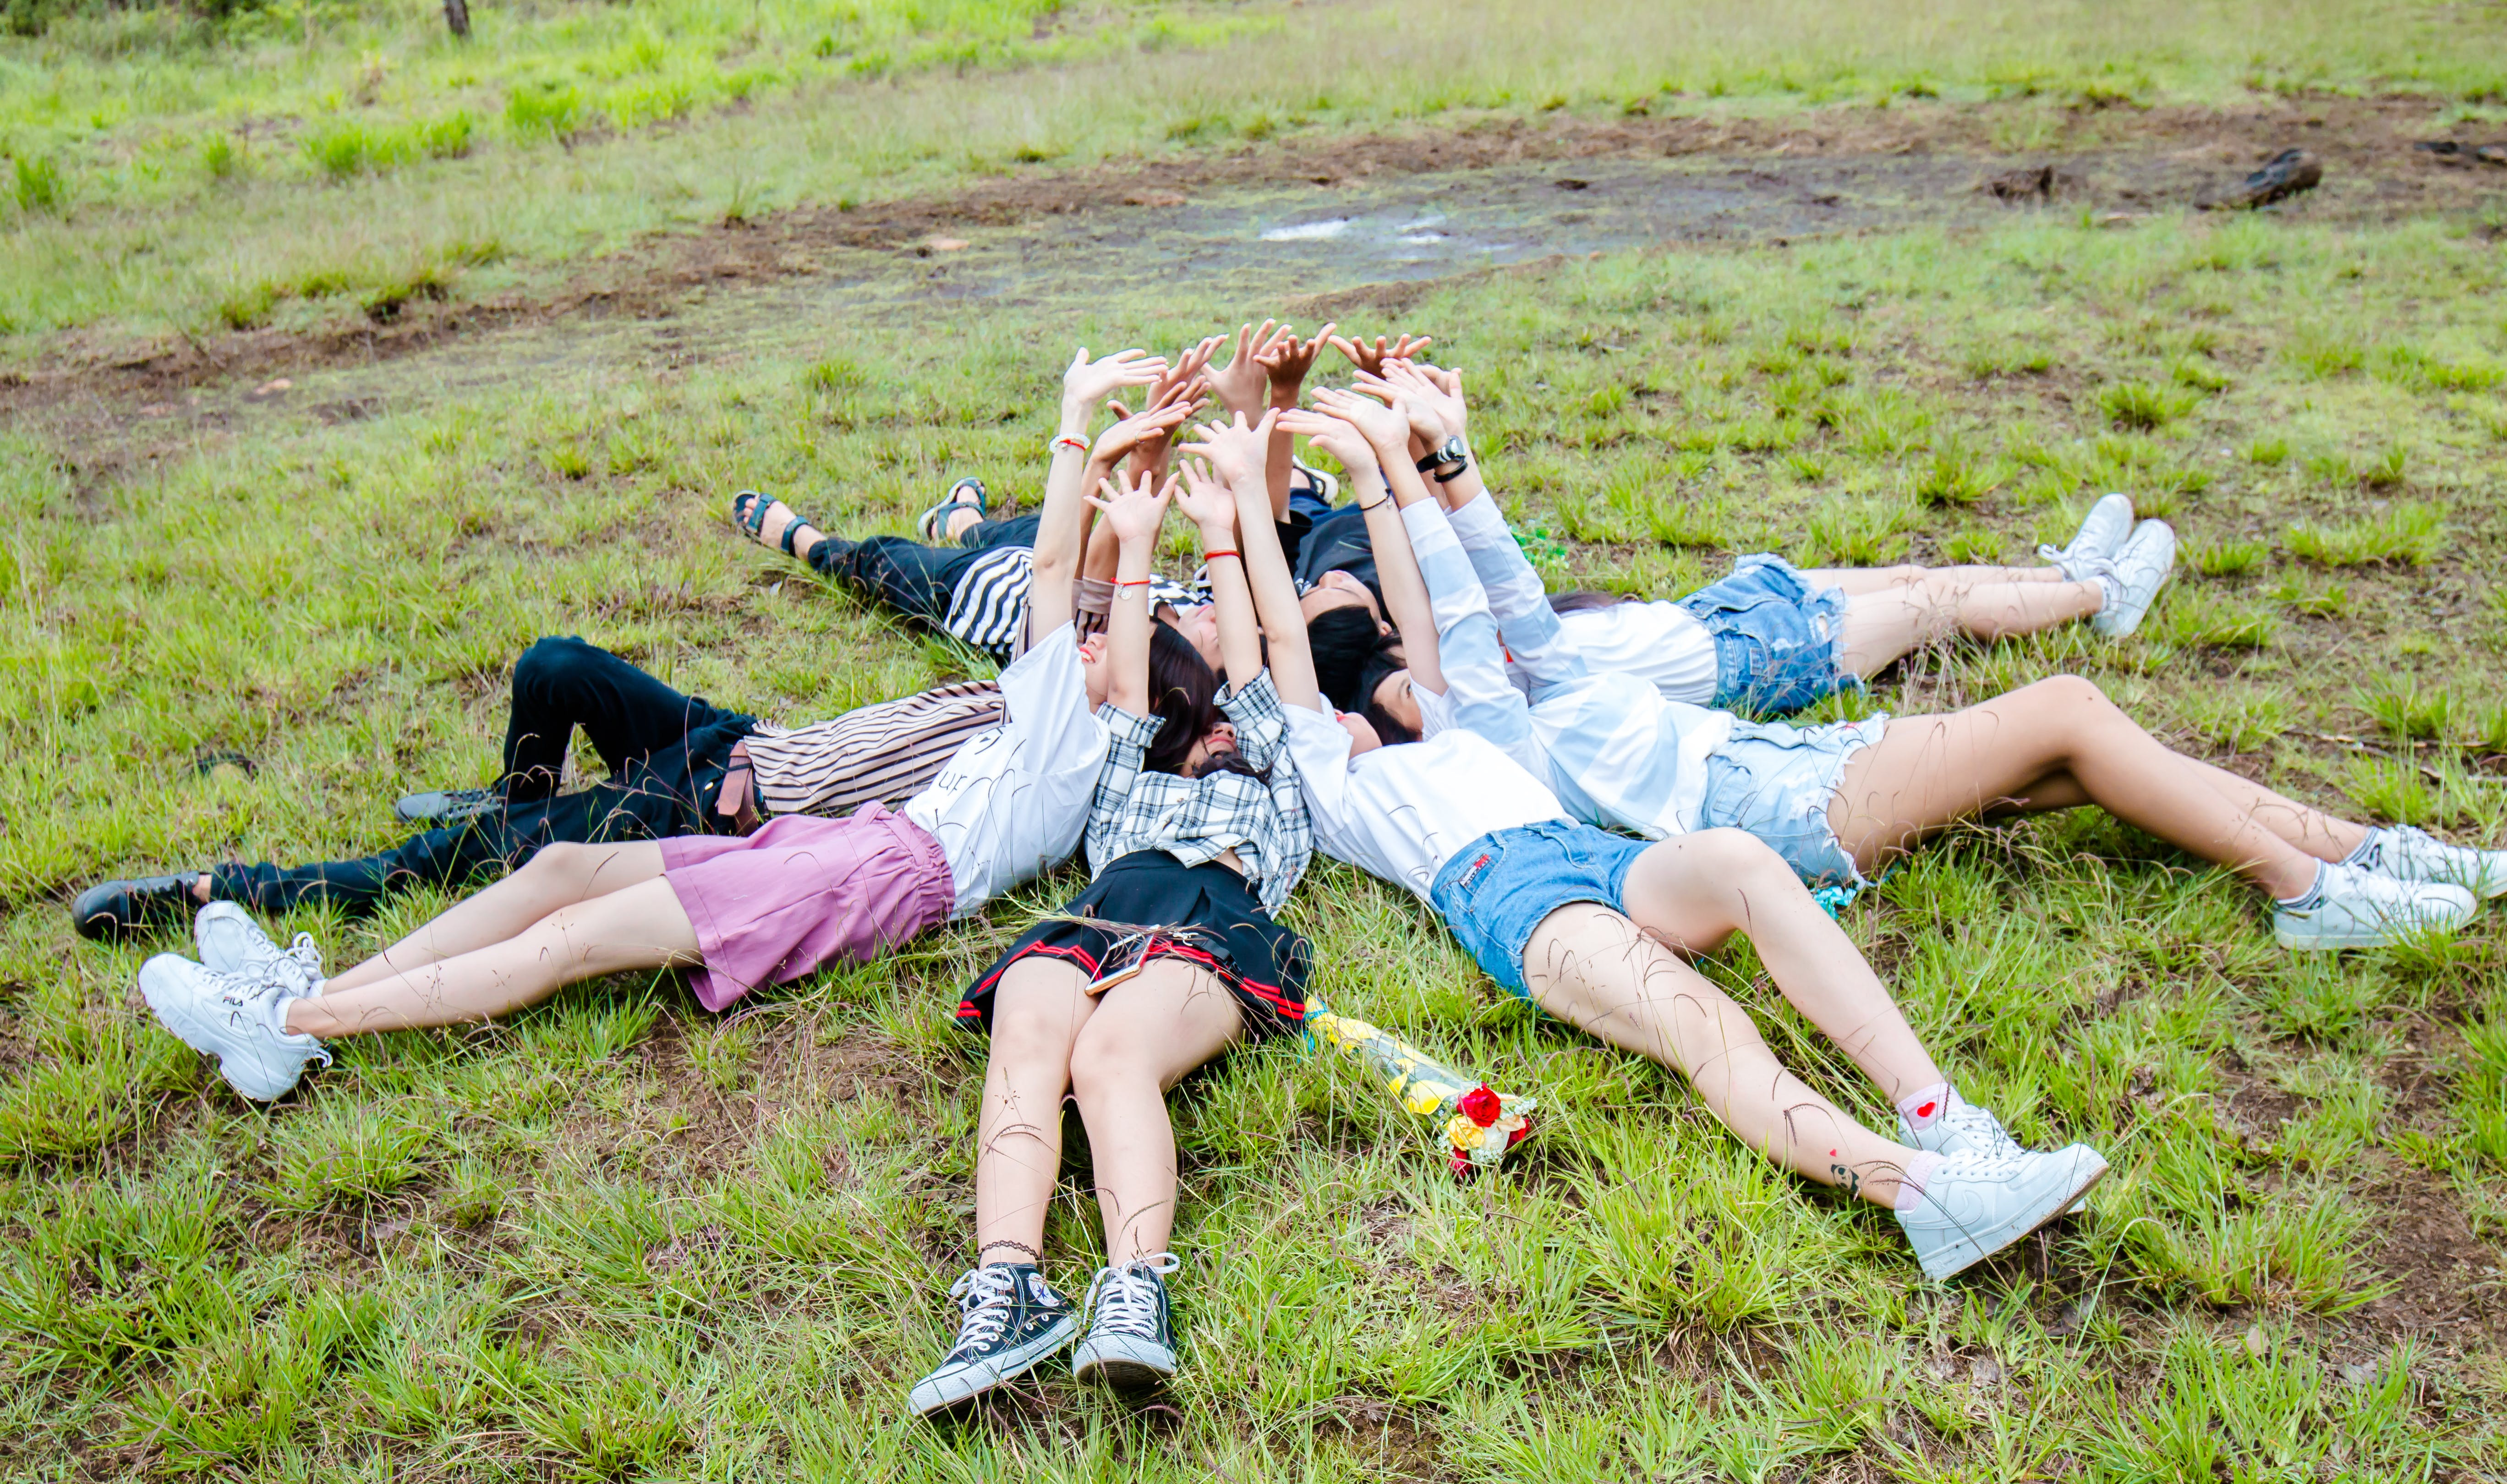 Group of Friends Form in Circle While Lying on the Grass While Hands on Top